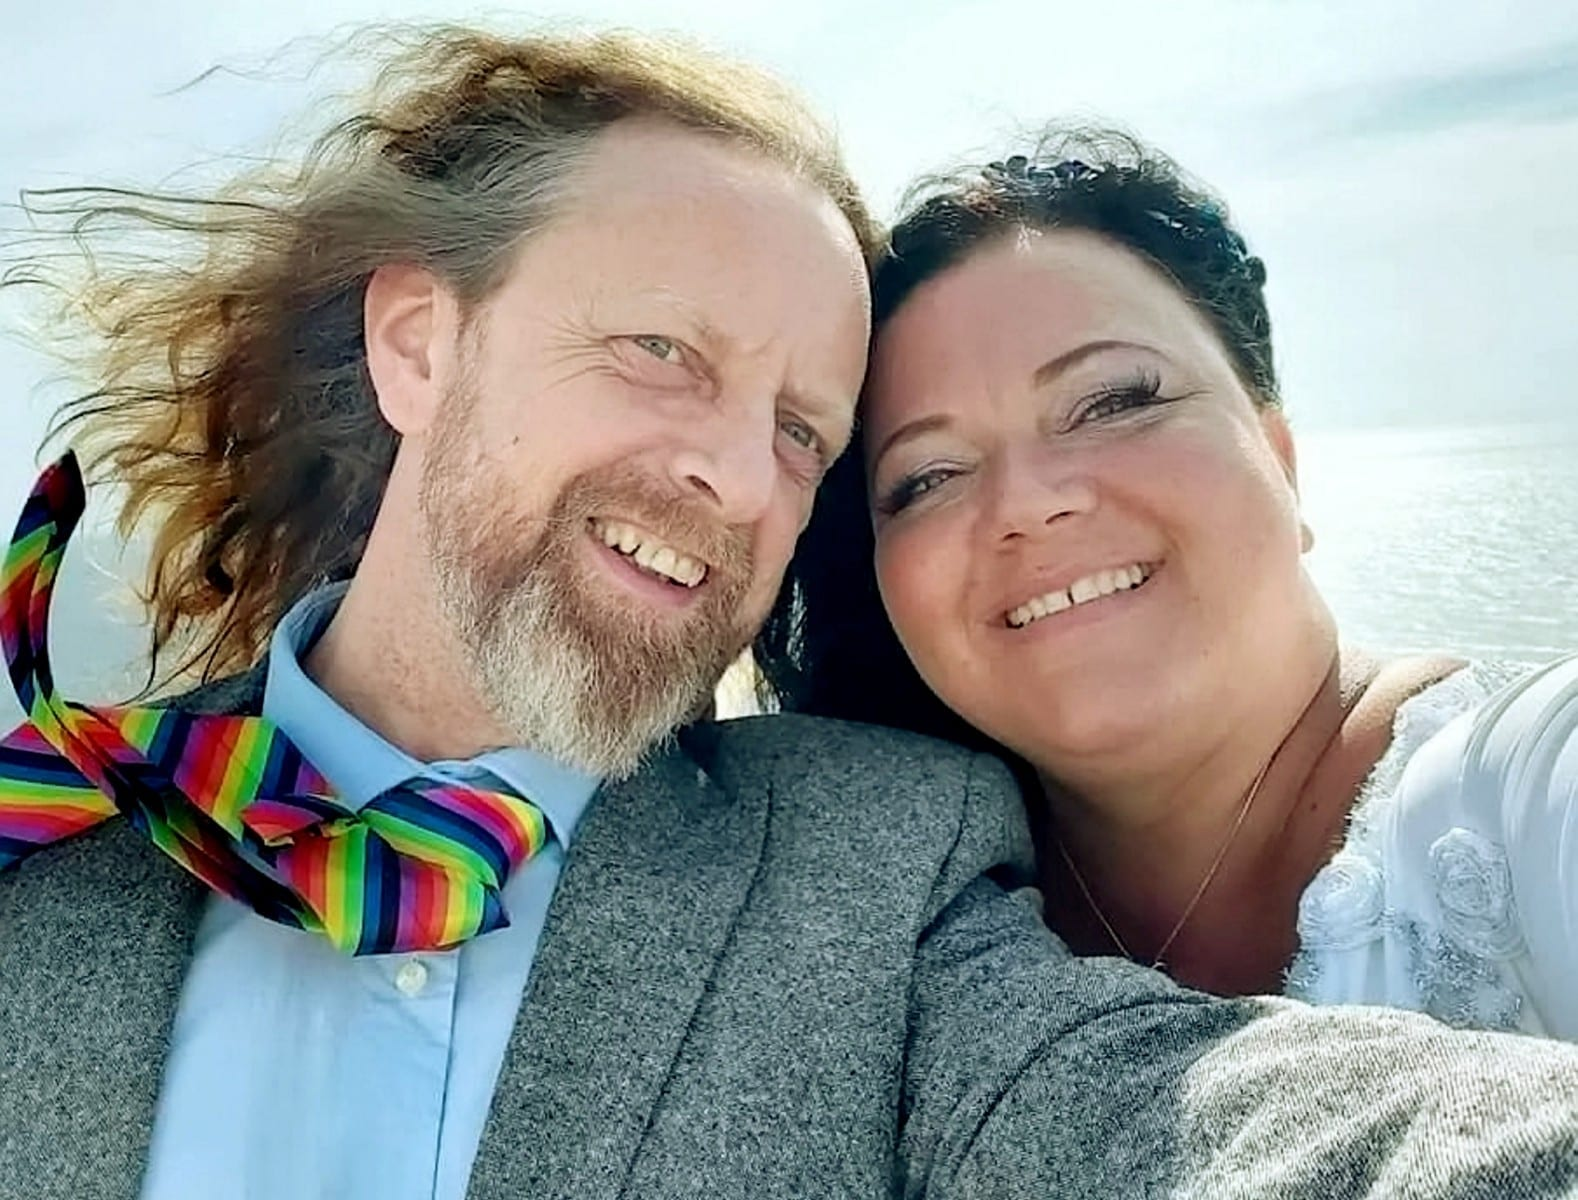 'I'm Ready To Start My New Life With My Soulmate' -Couple Marry After They Found Love While Grieving for Their Long-Term Partners – Who Died Just Six Days Apart